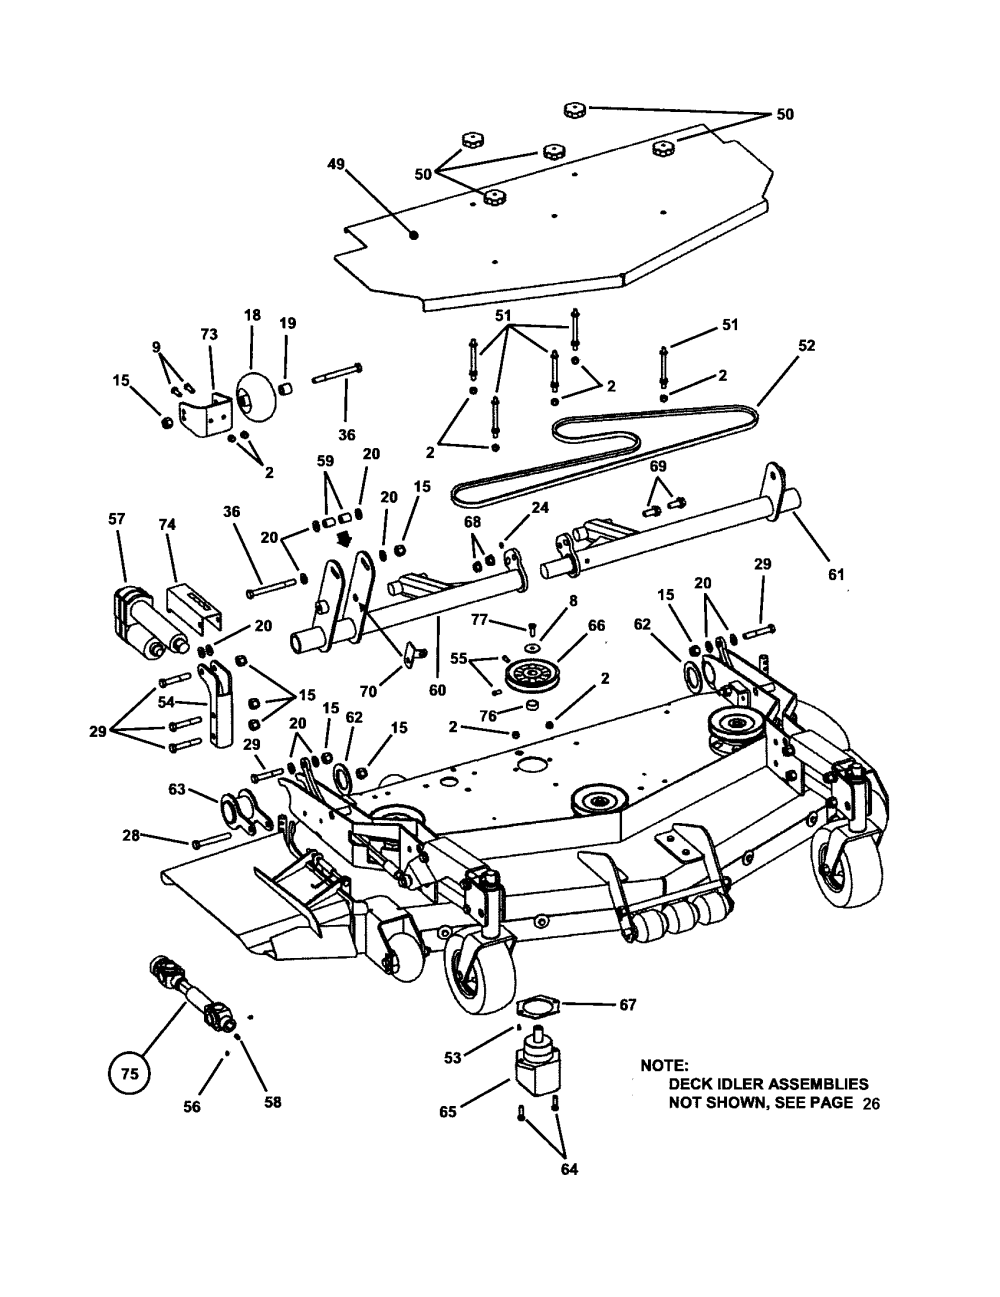 medium resolution of diagram as well as ariens snow blower parts diagram wiring harness